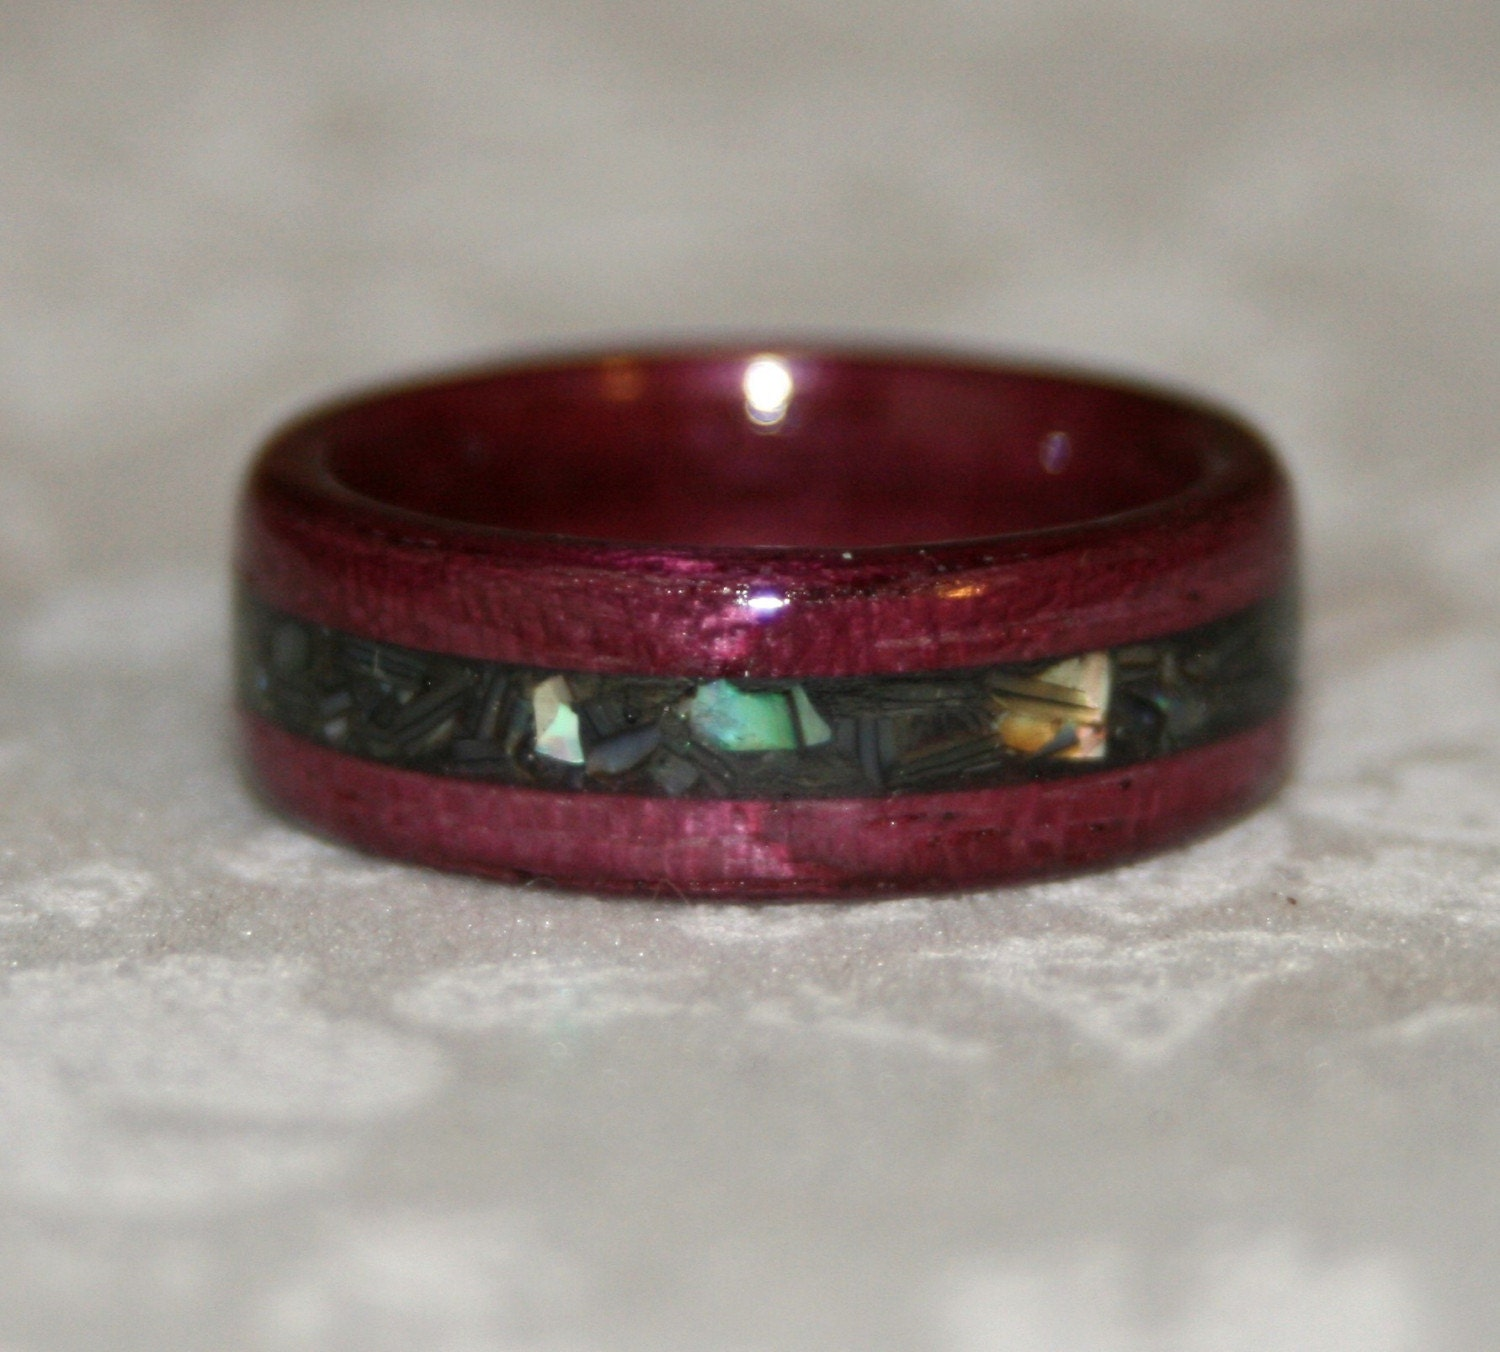 Crushed Gemstone For Inlays : Custom wooden ring with crushed stone inlay by mnmwoodworks